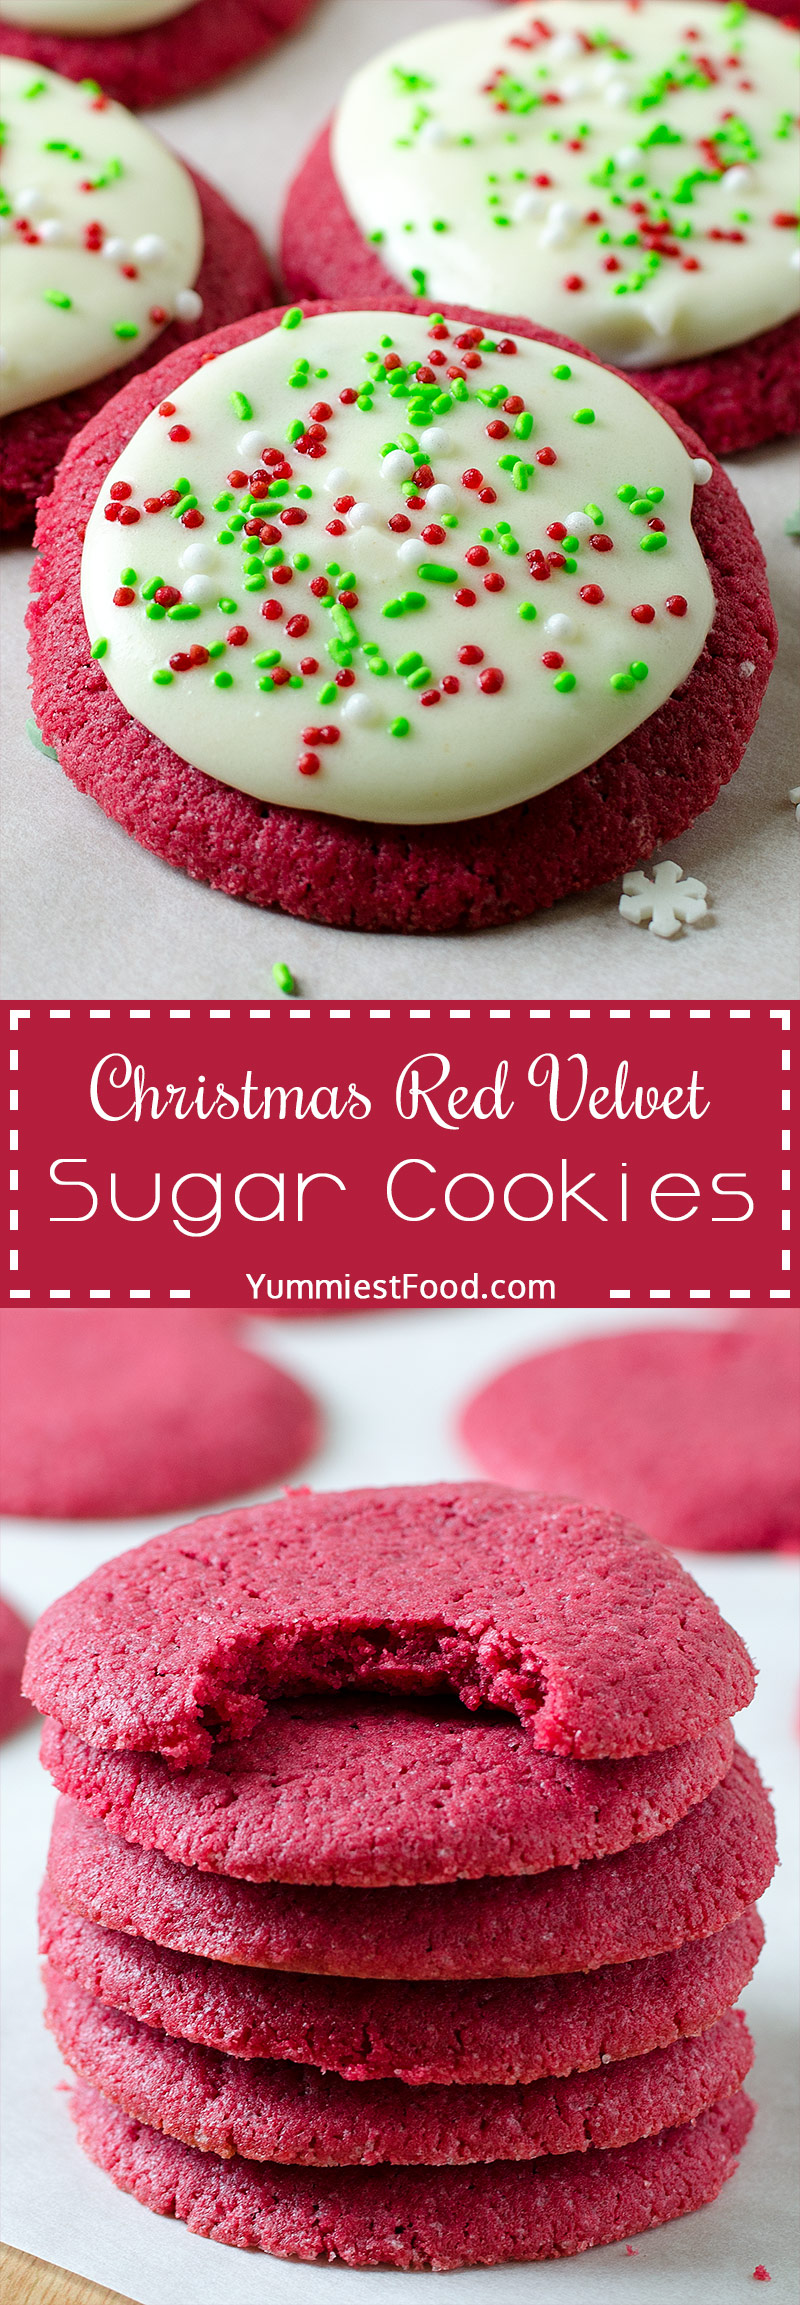 CHRISTMAS RED VELVET SUGAR COOKIES – Perfect and easy cookie recipe for Christmas or any festive time of year! The delicious flavor of red velvet, buttery soft and topped with best cream cheese frosting